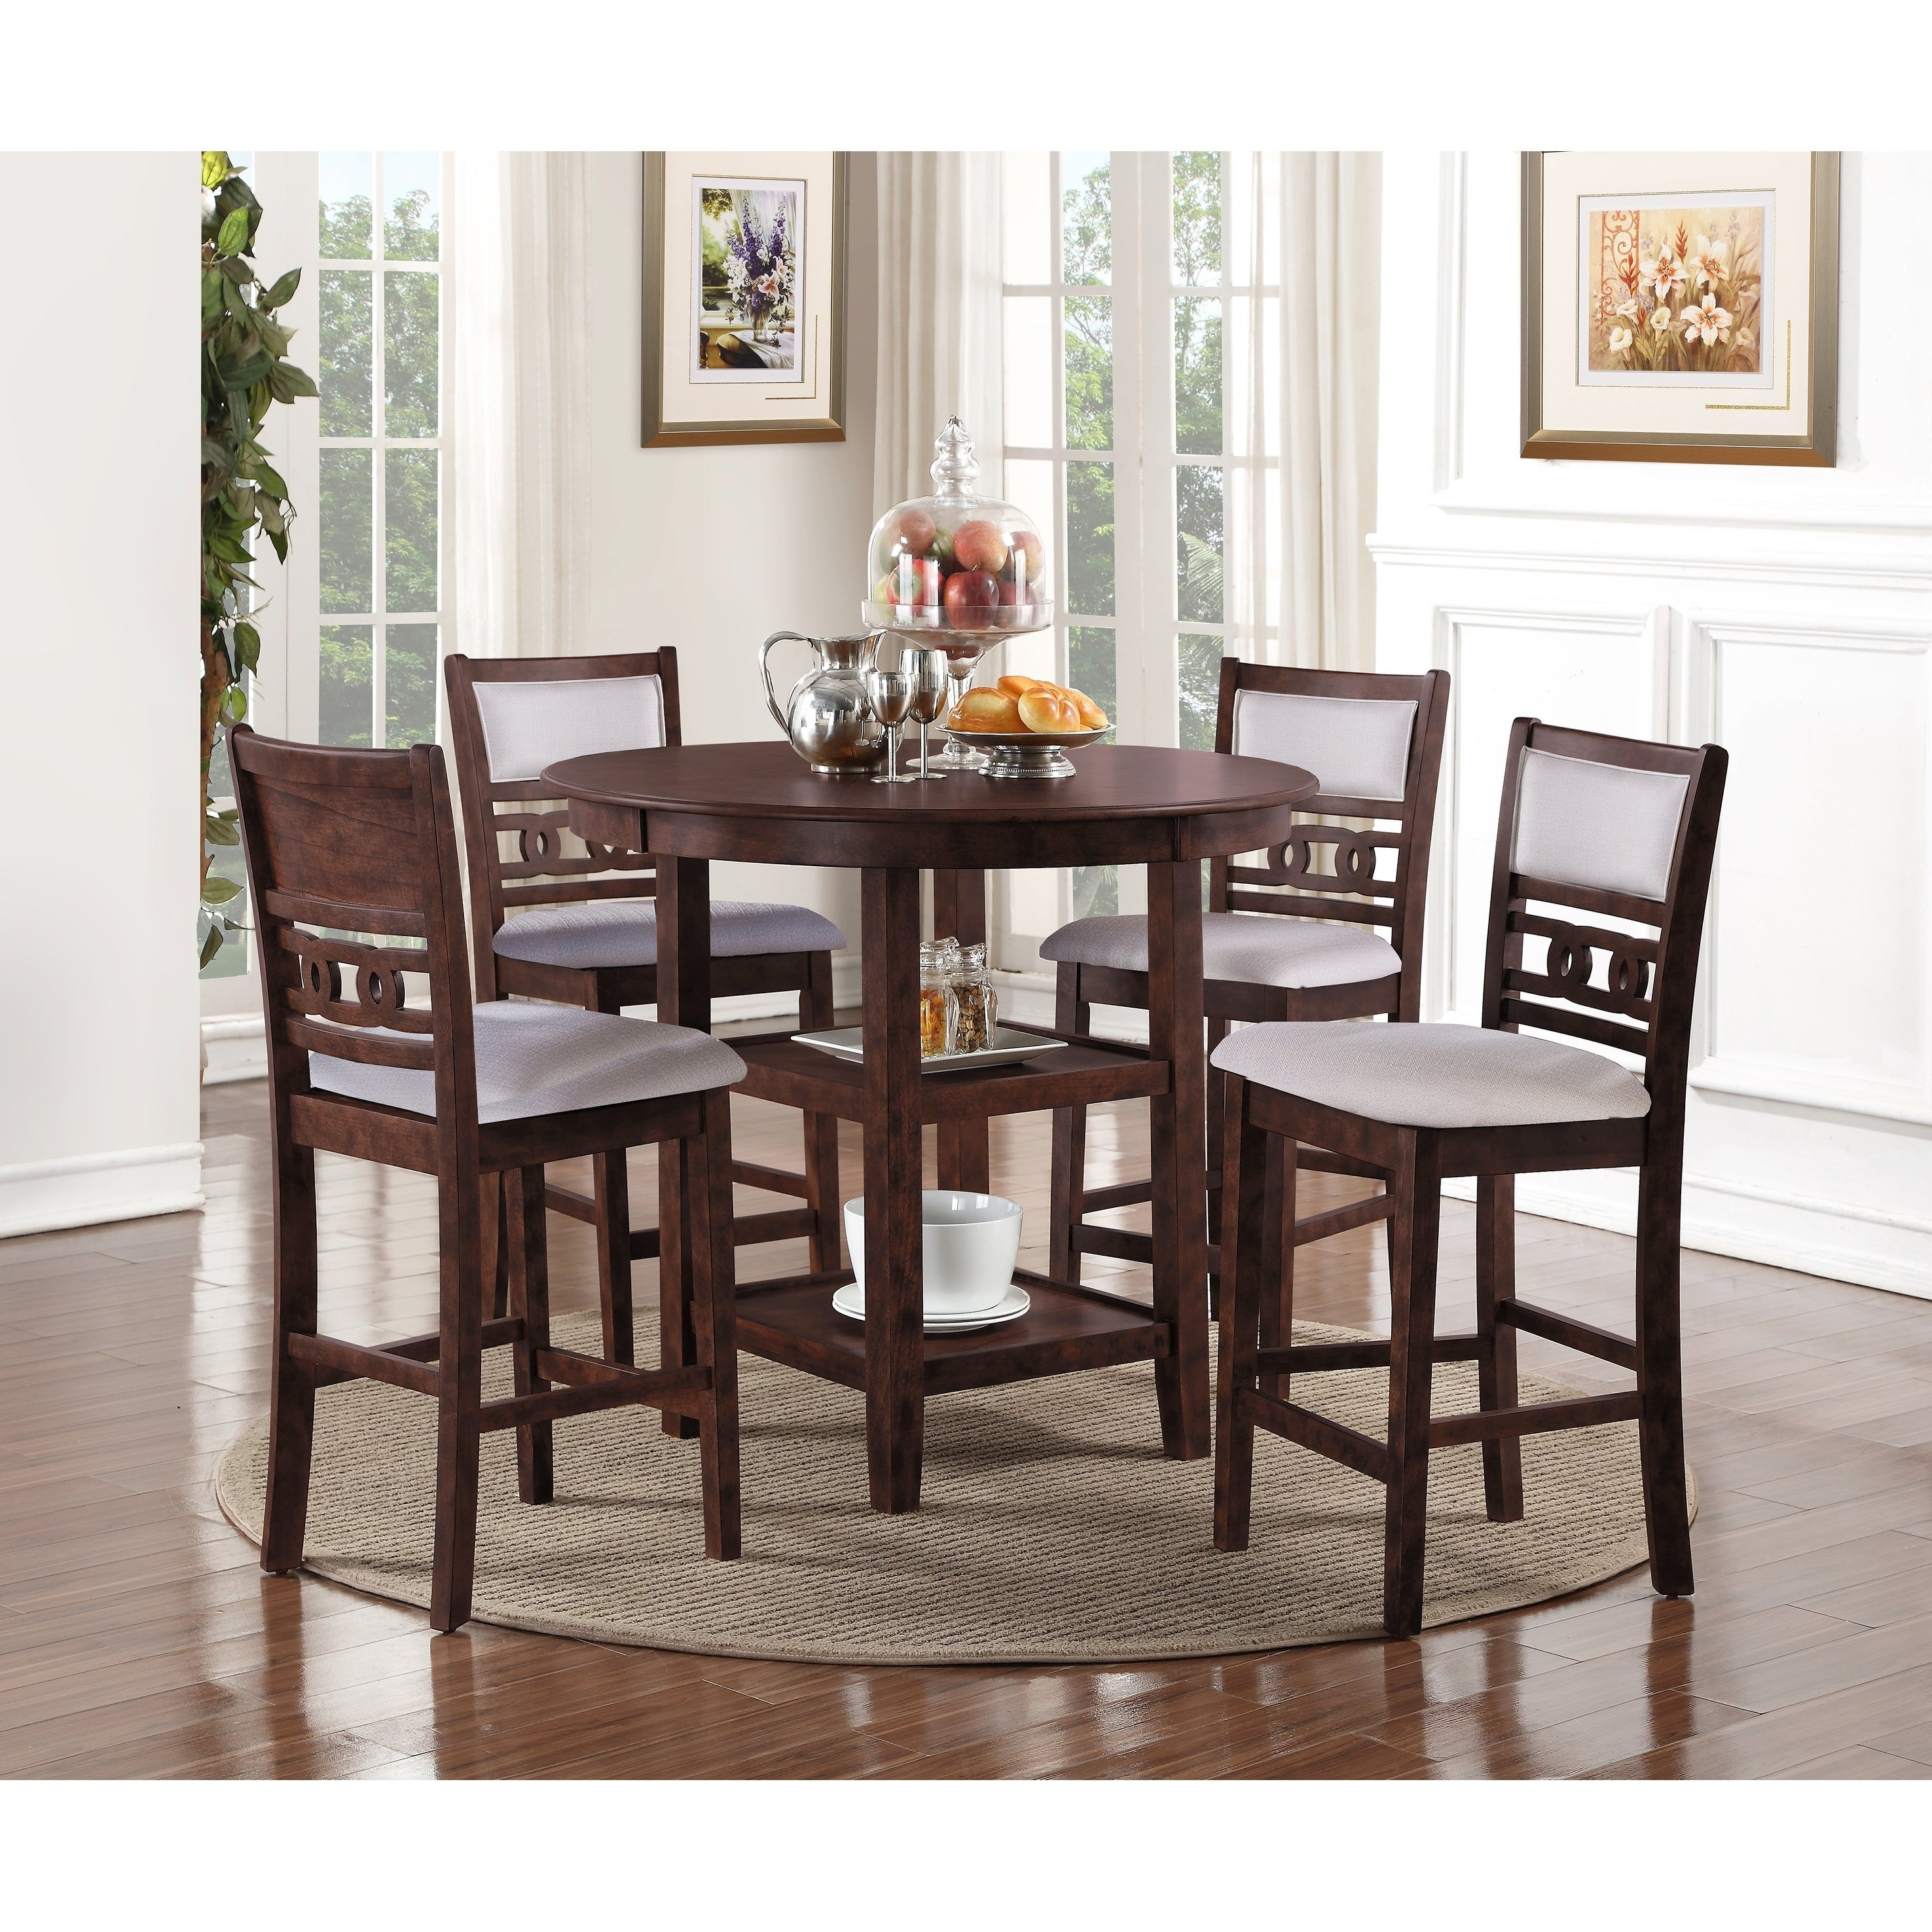 Goodman 5 Piece Solid Wood Dining Sets (Set Of 5) With Regard To Fashionable Shop Copper Grove Creteil 5 Piece Counter Height Dining Table Set (View 10 of 25)